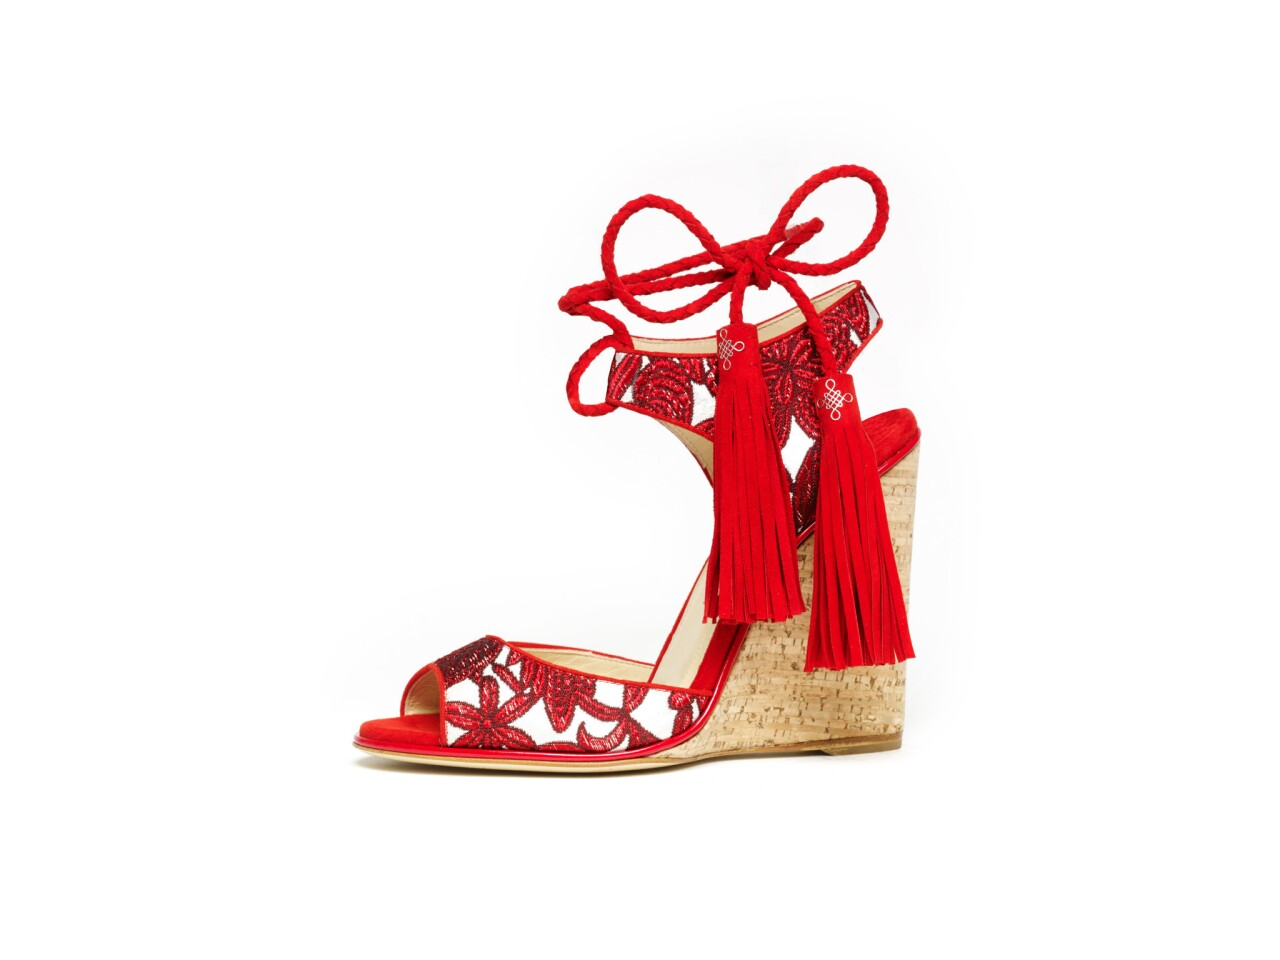 The Tianjin dragon red shoe from Paul Andrew's pre-spring 2016 collection was inspired by a trip to Hong Kong. The New York-based designer was visiting L.A. last week to show the collection to celebrity stylists and make a push for red carpet dressing.